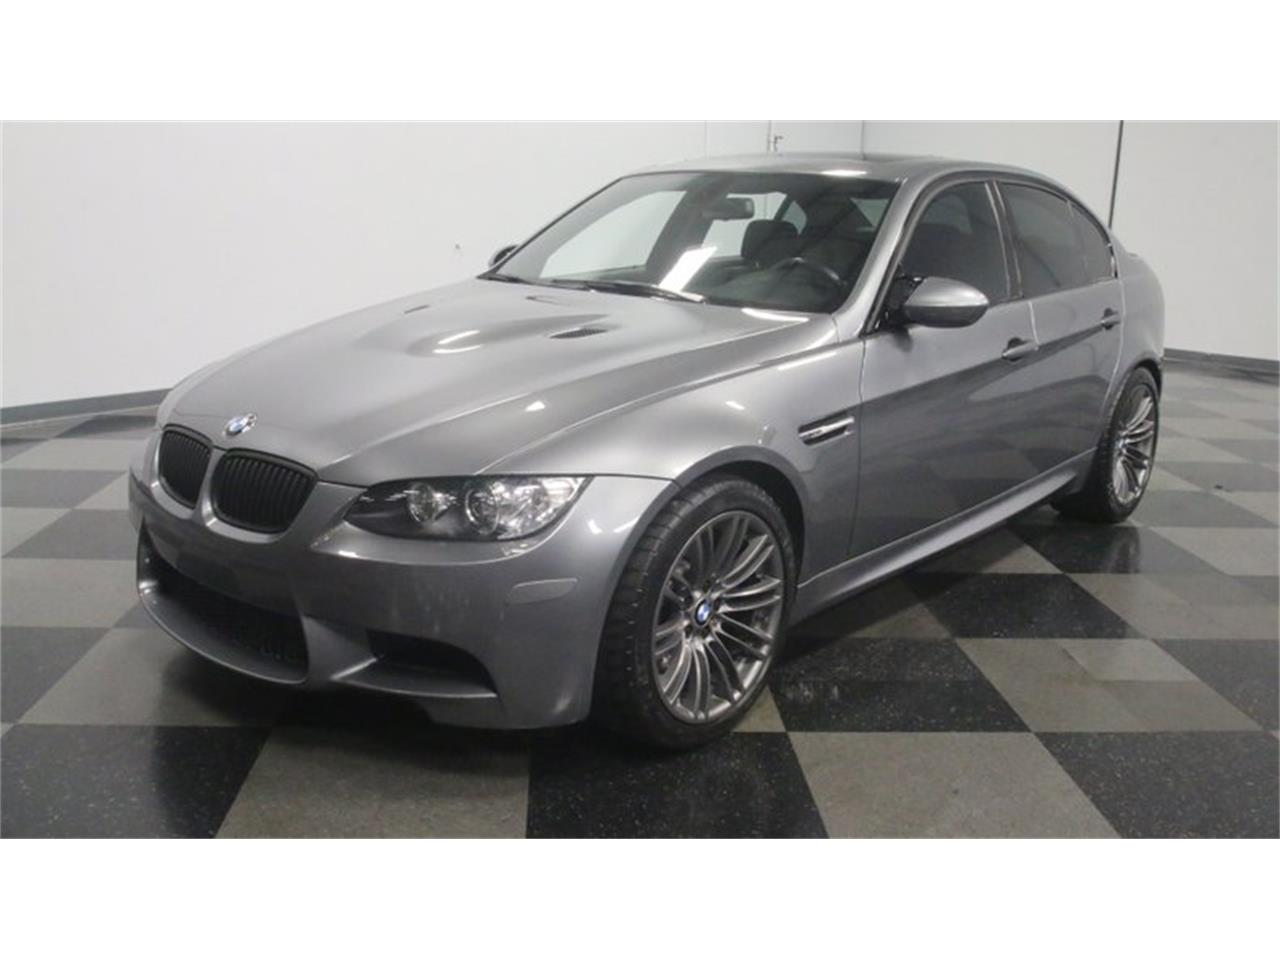 2010 BMW M3 for sale in Lithia Springs, GA – photo 21